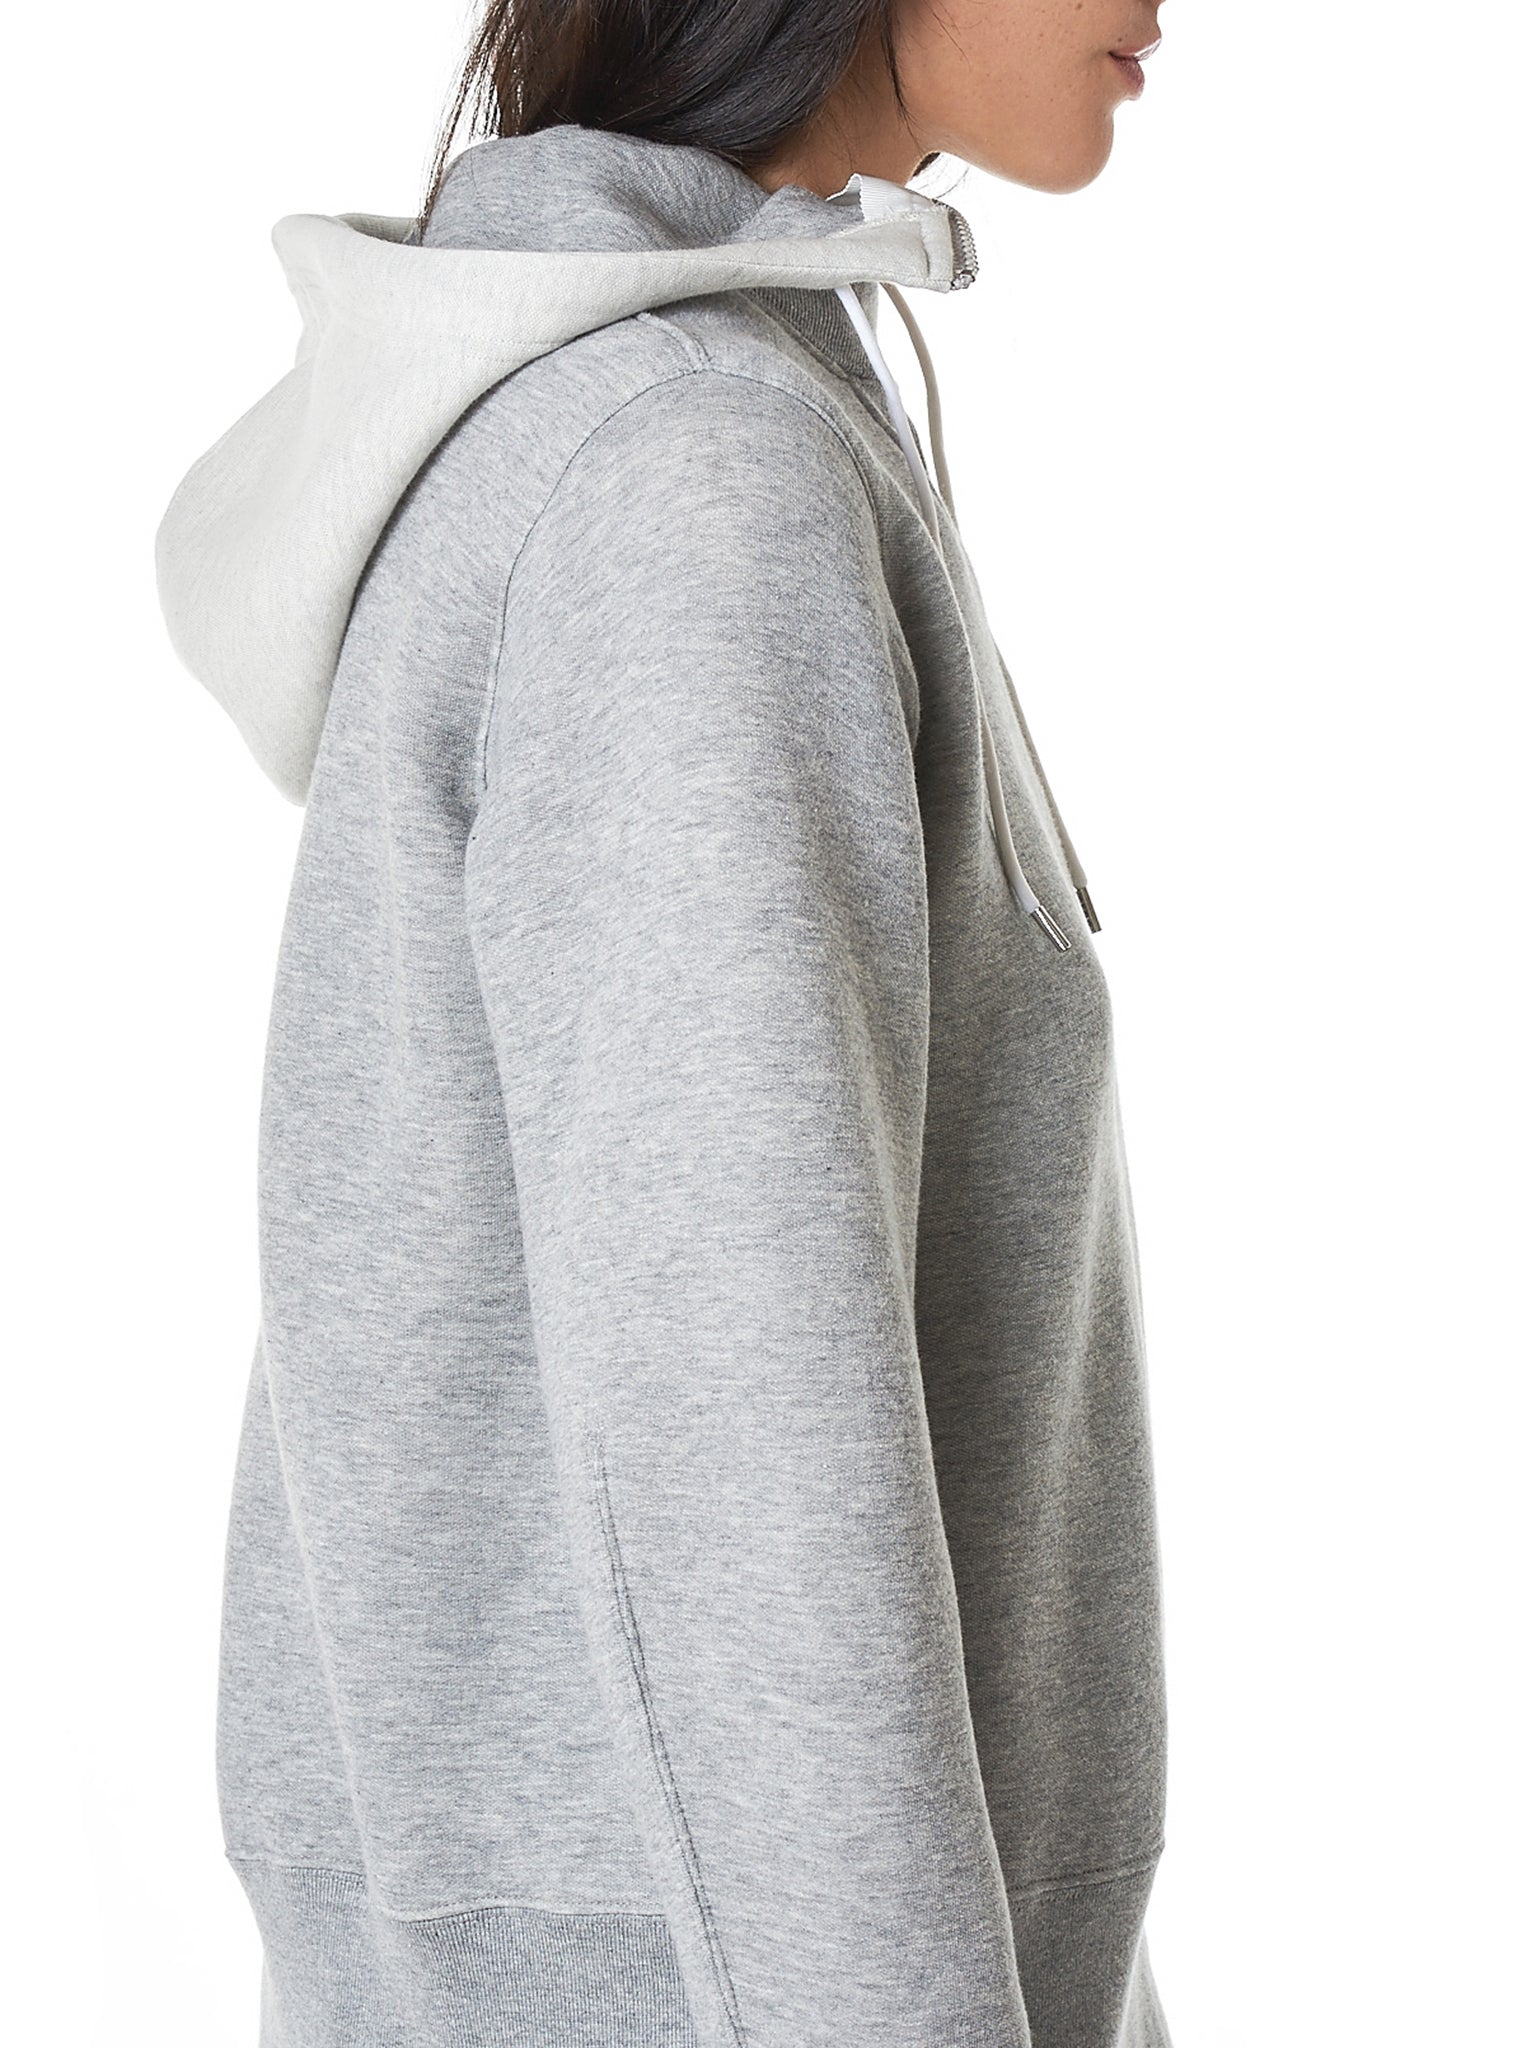 Spliced Pullover Panel Jacket (18-214185-LIGHT-GRAY)